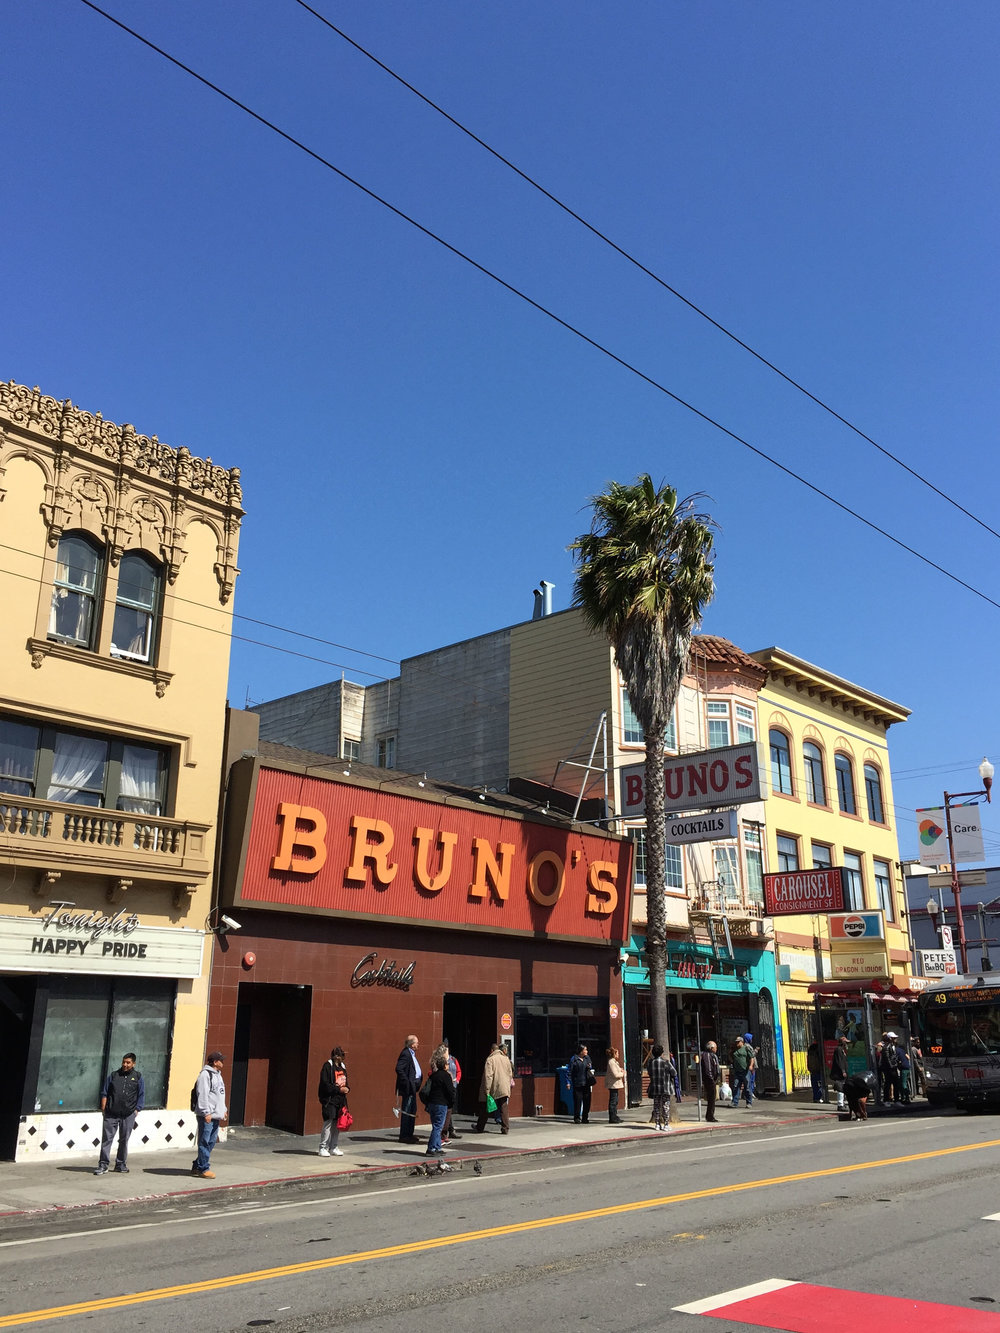 'Bruno's' Mission St, San Francisco, California, 2016.